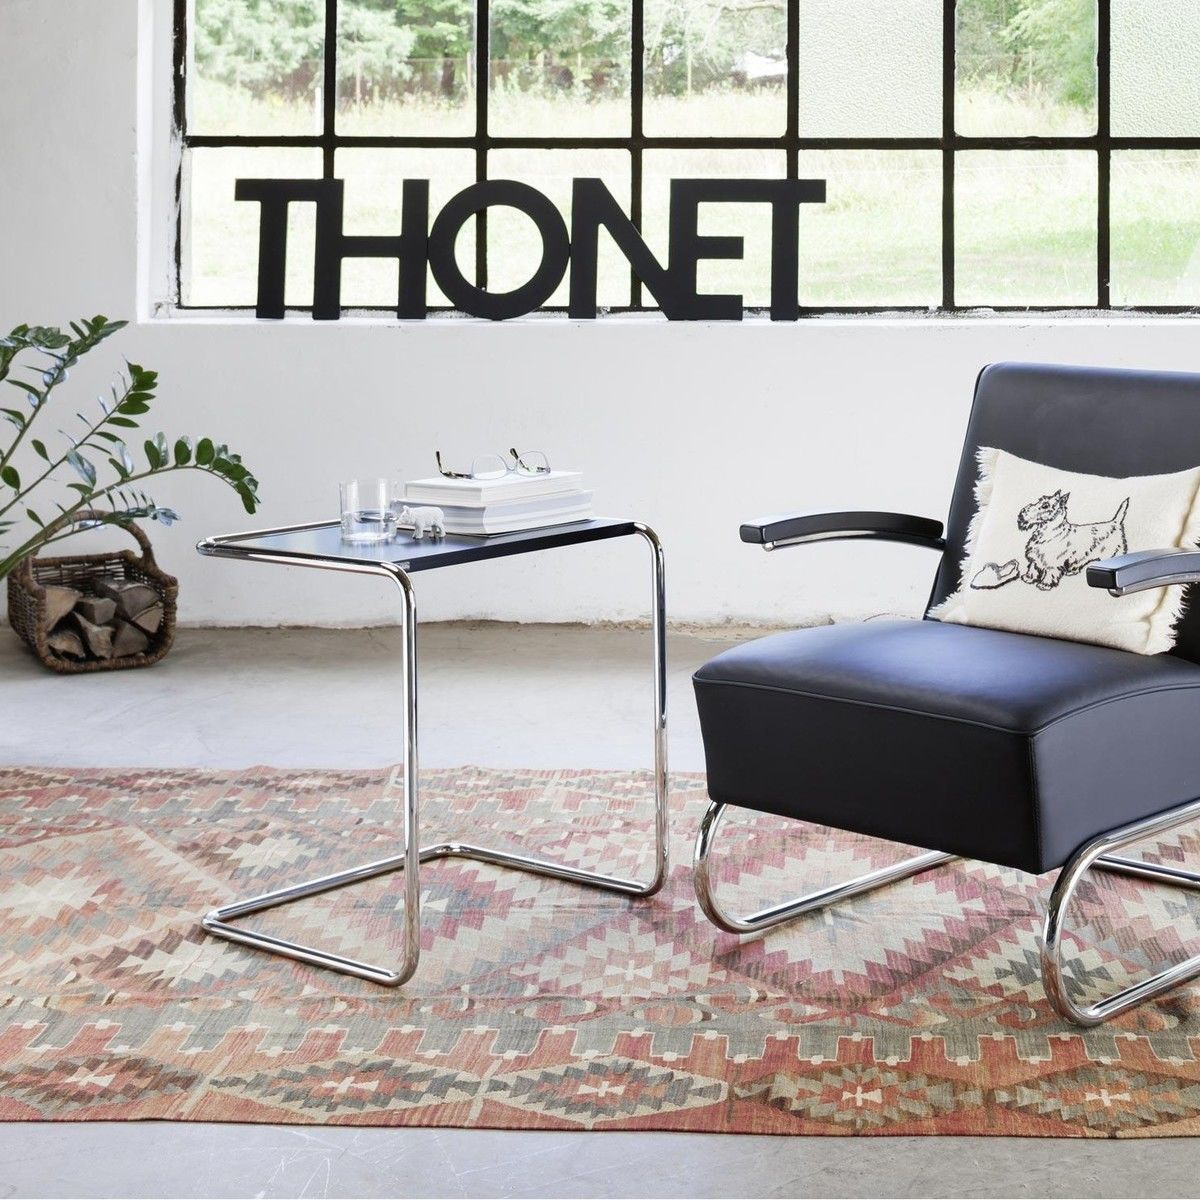 thonet b 97 beistelltisch thonet. Black Bedroom Furniture Sets. Home Design Ideas